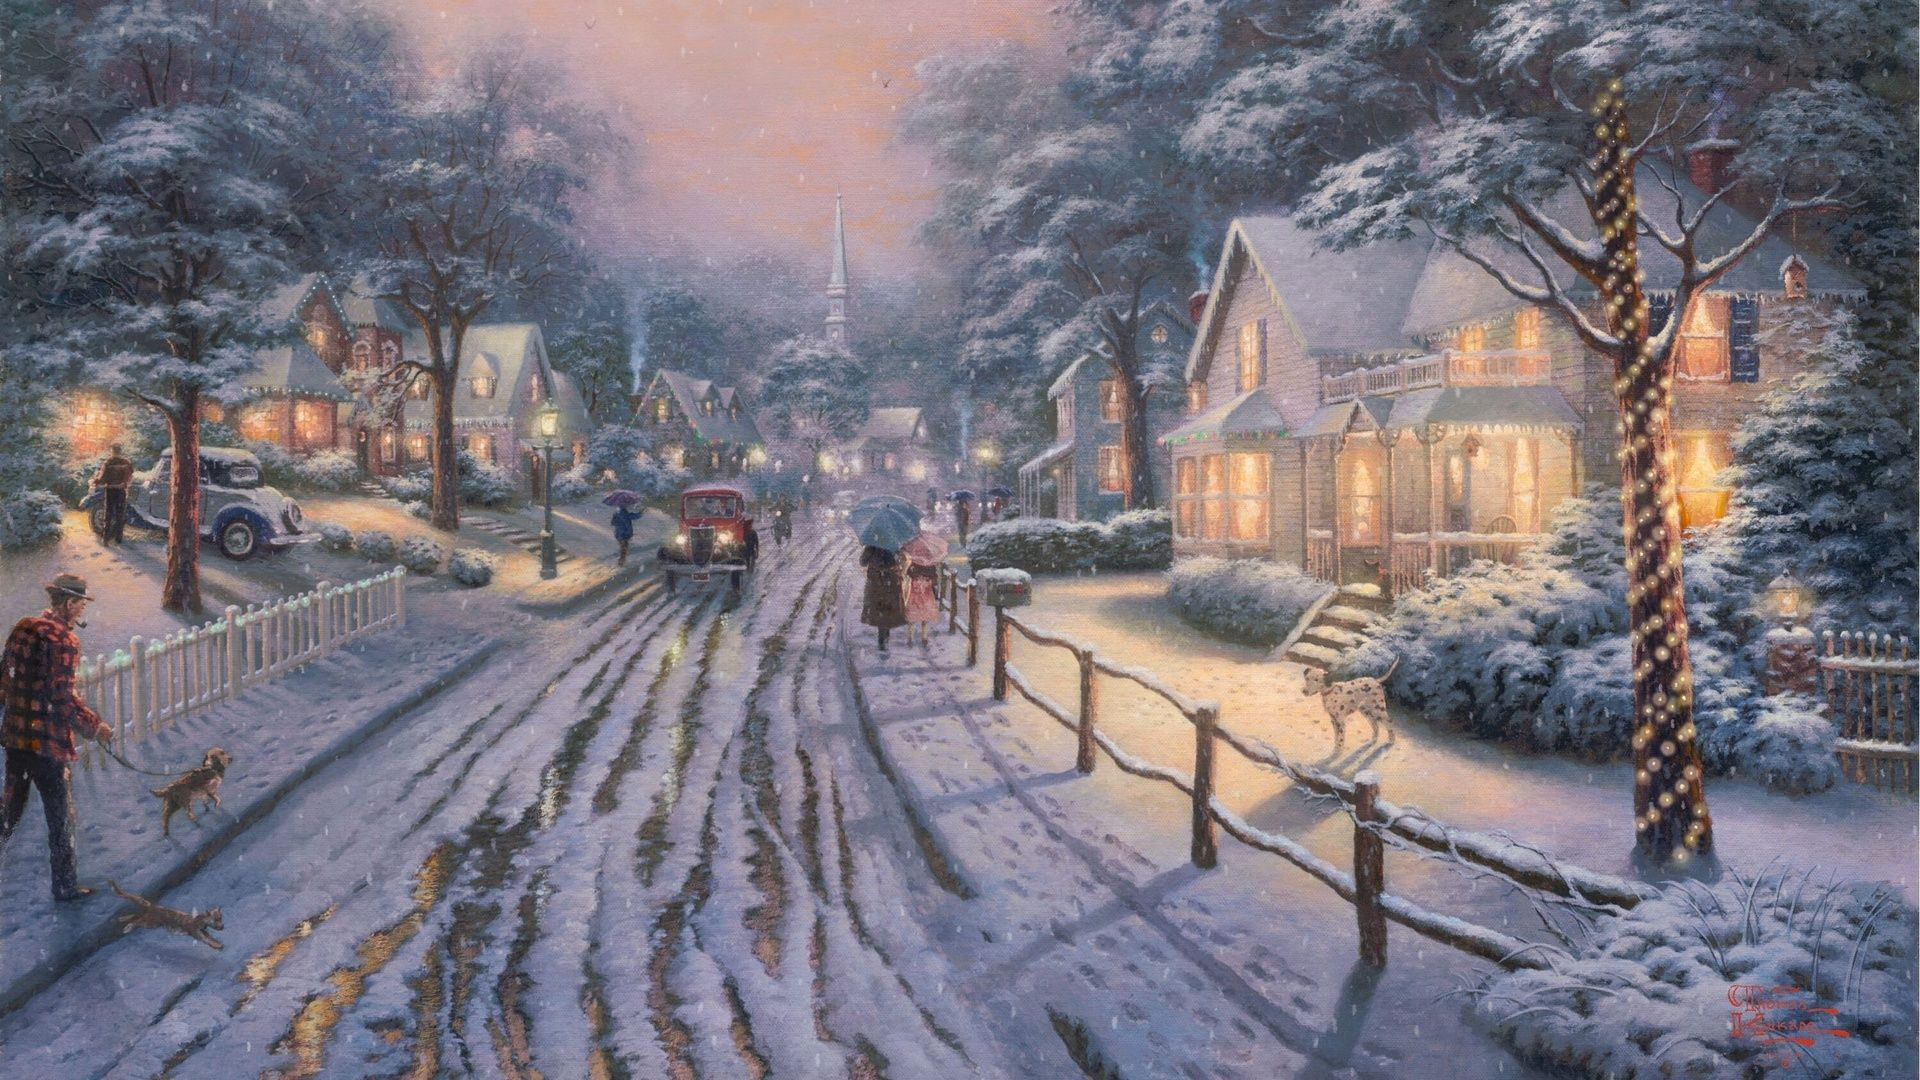 thomas kinkade cottage wallpaper | Free Thomas Kinkade Winter Cottage Wallpaper 81797 Download .